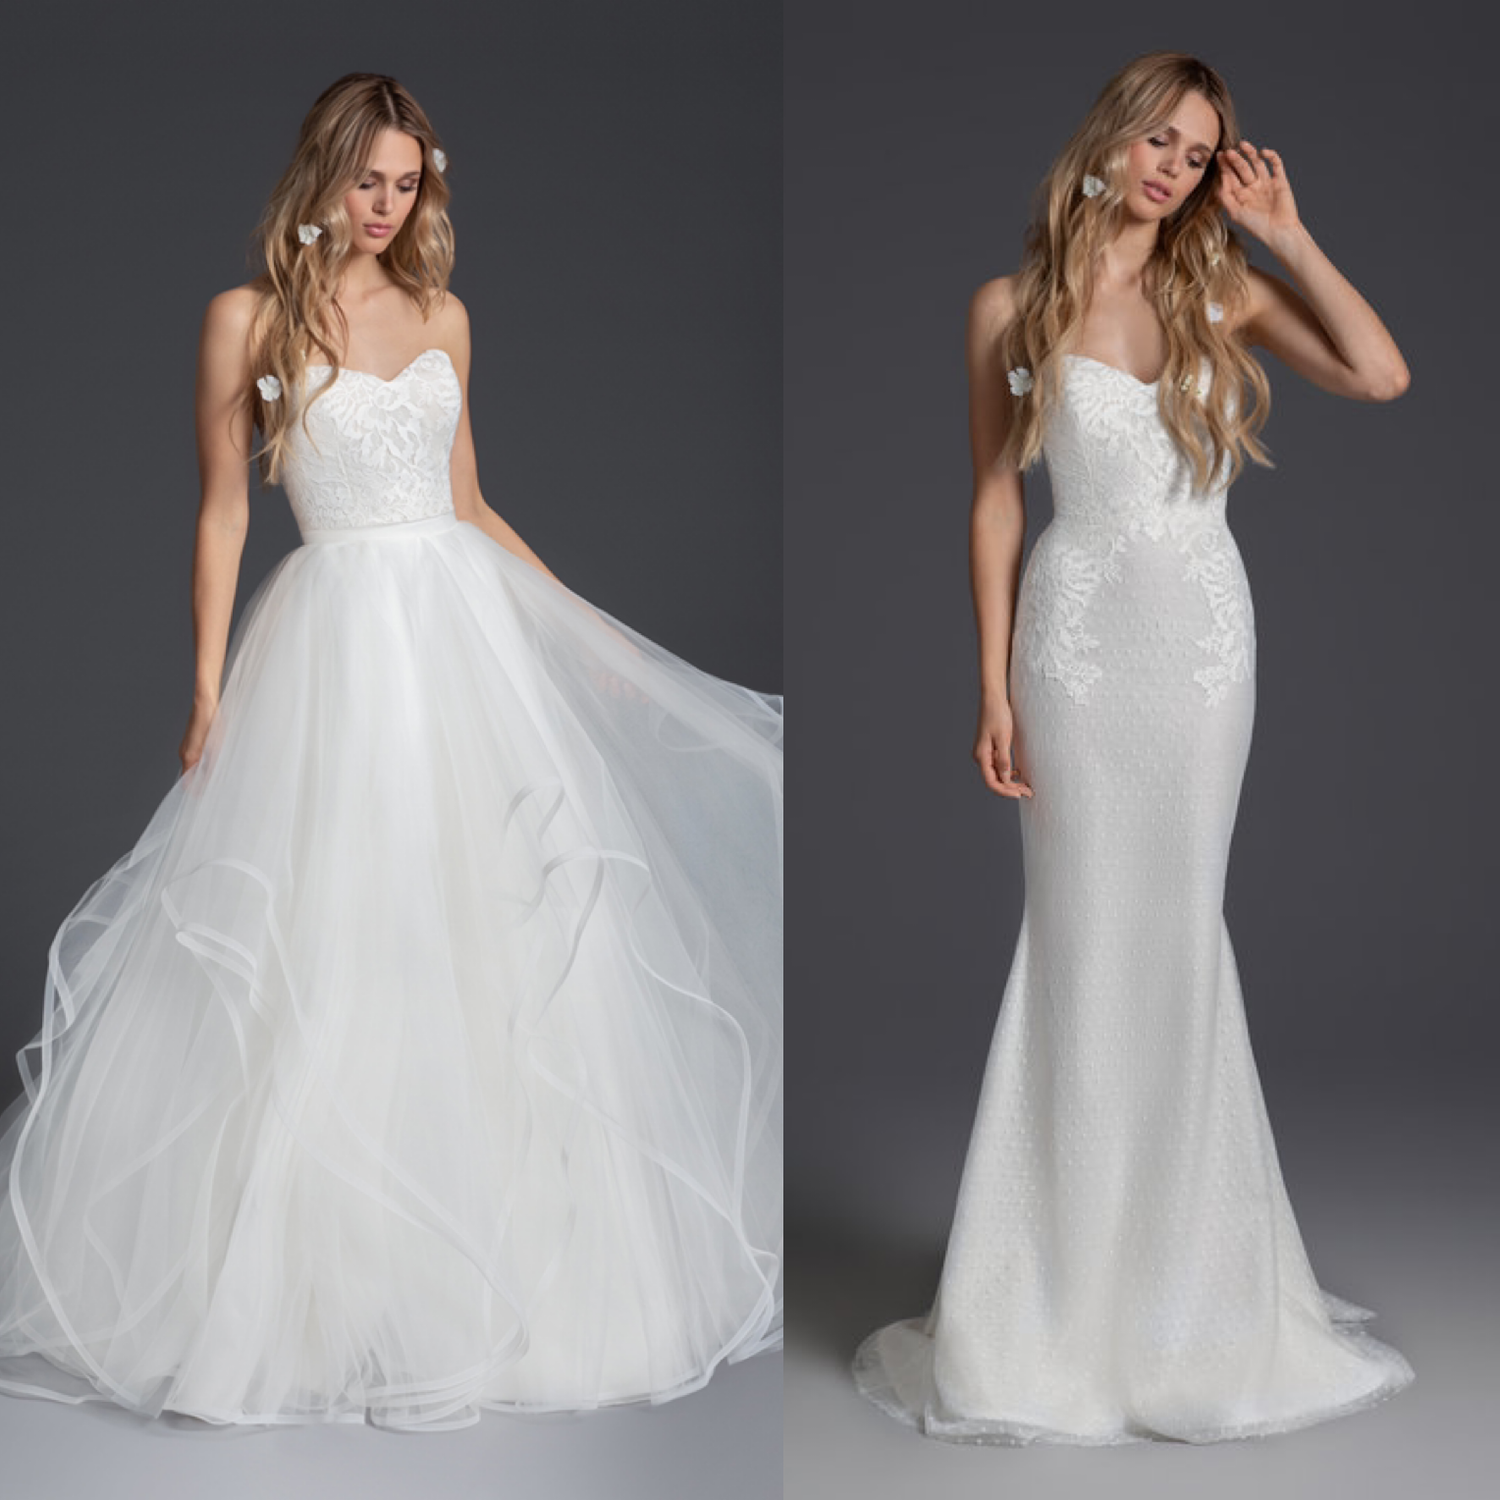 TwoinOne Dresses Mixing up Your Wedding Day Style from